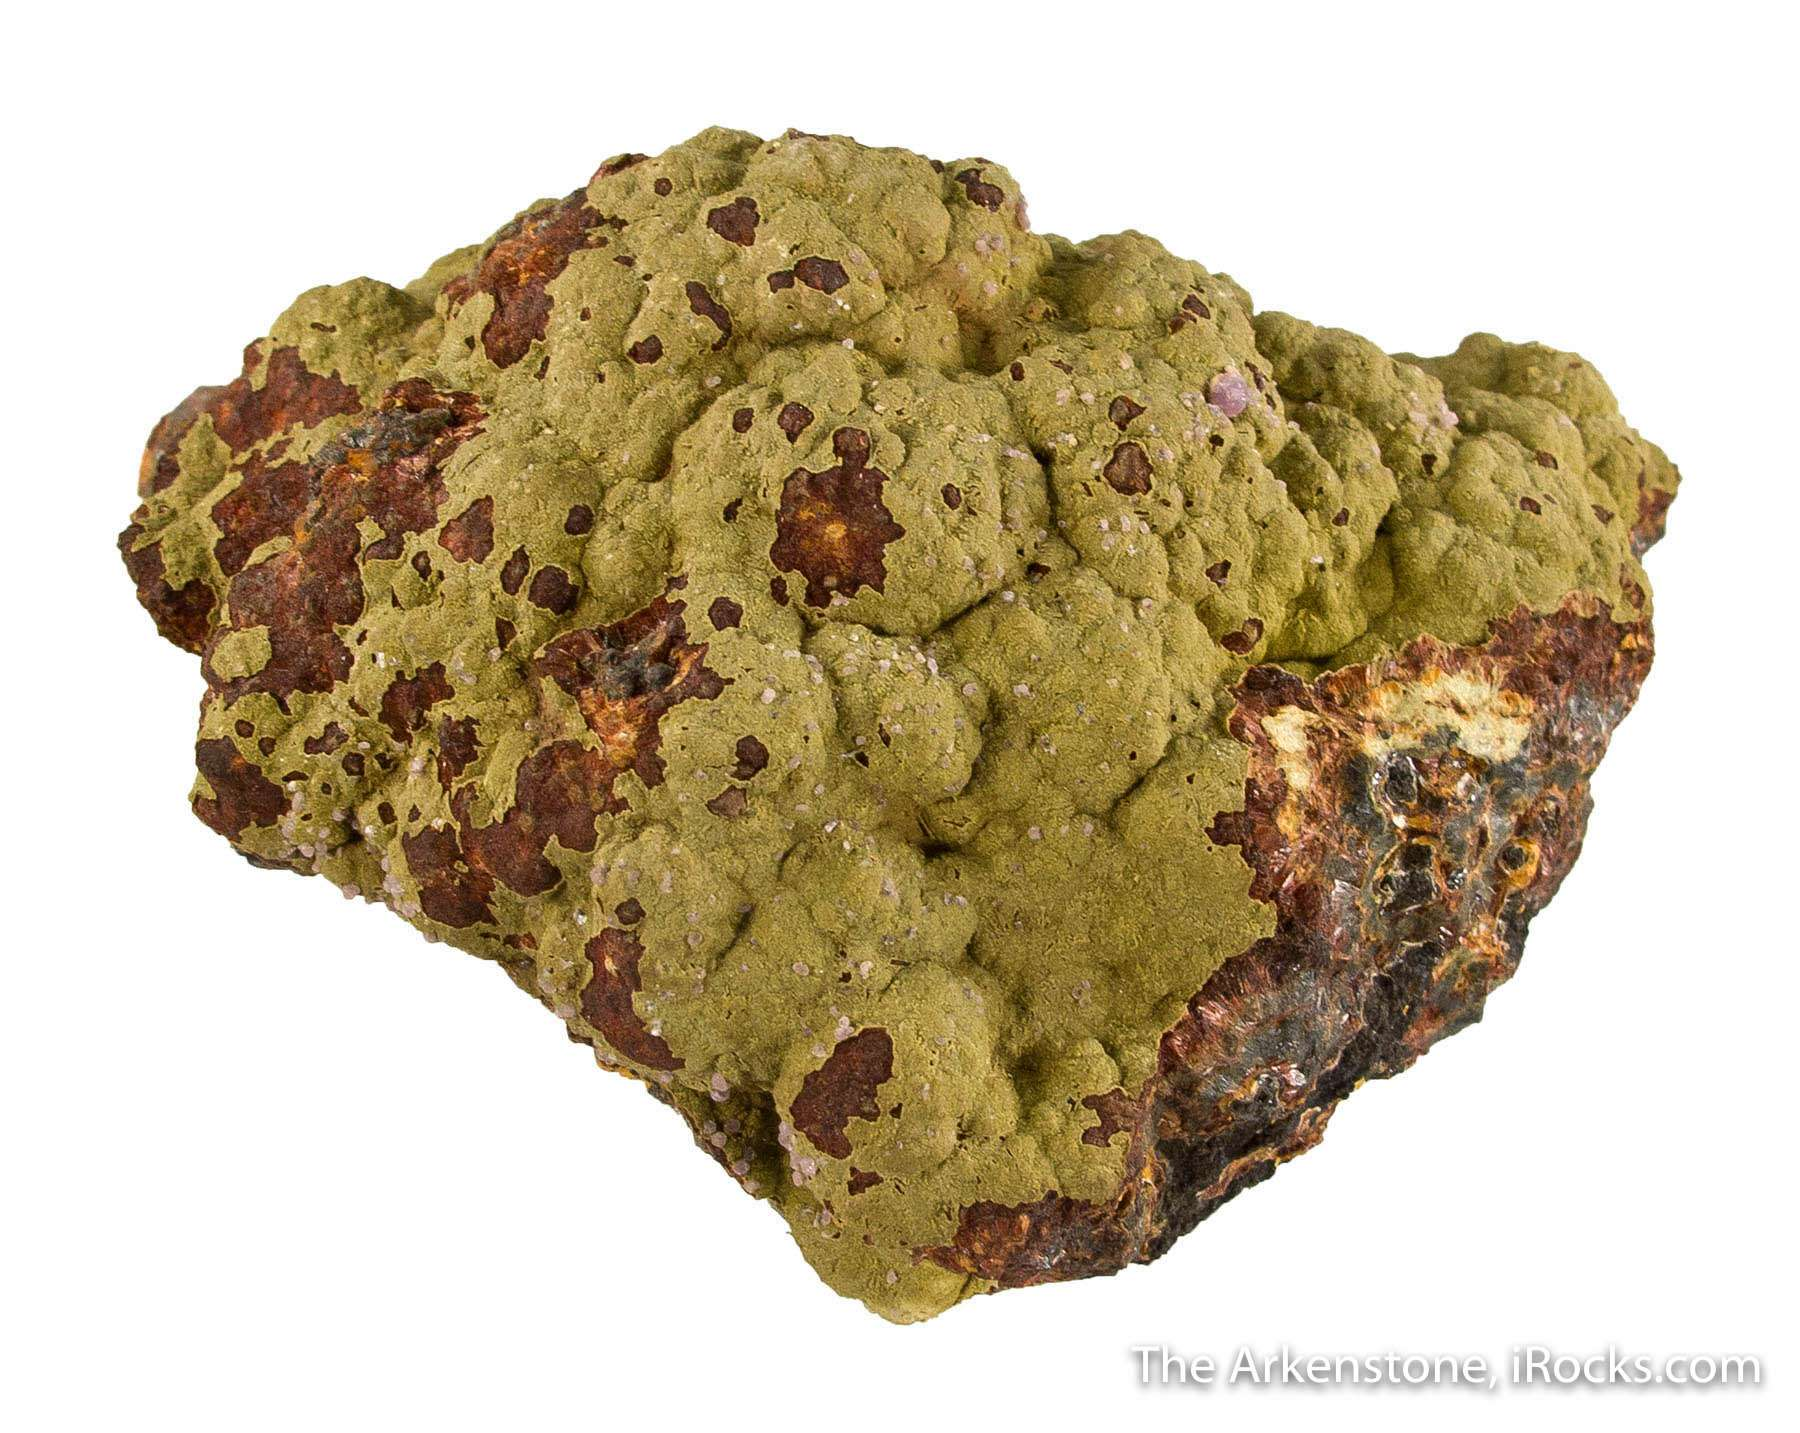 A nice large cabinet specimen hummocky surface beraunite dufrenite